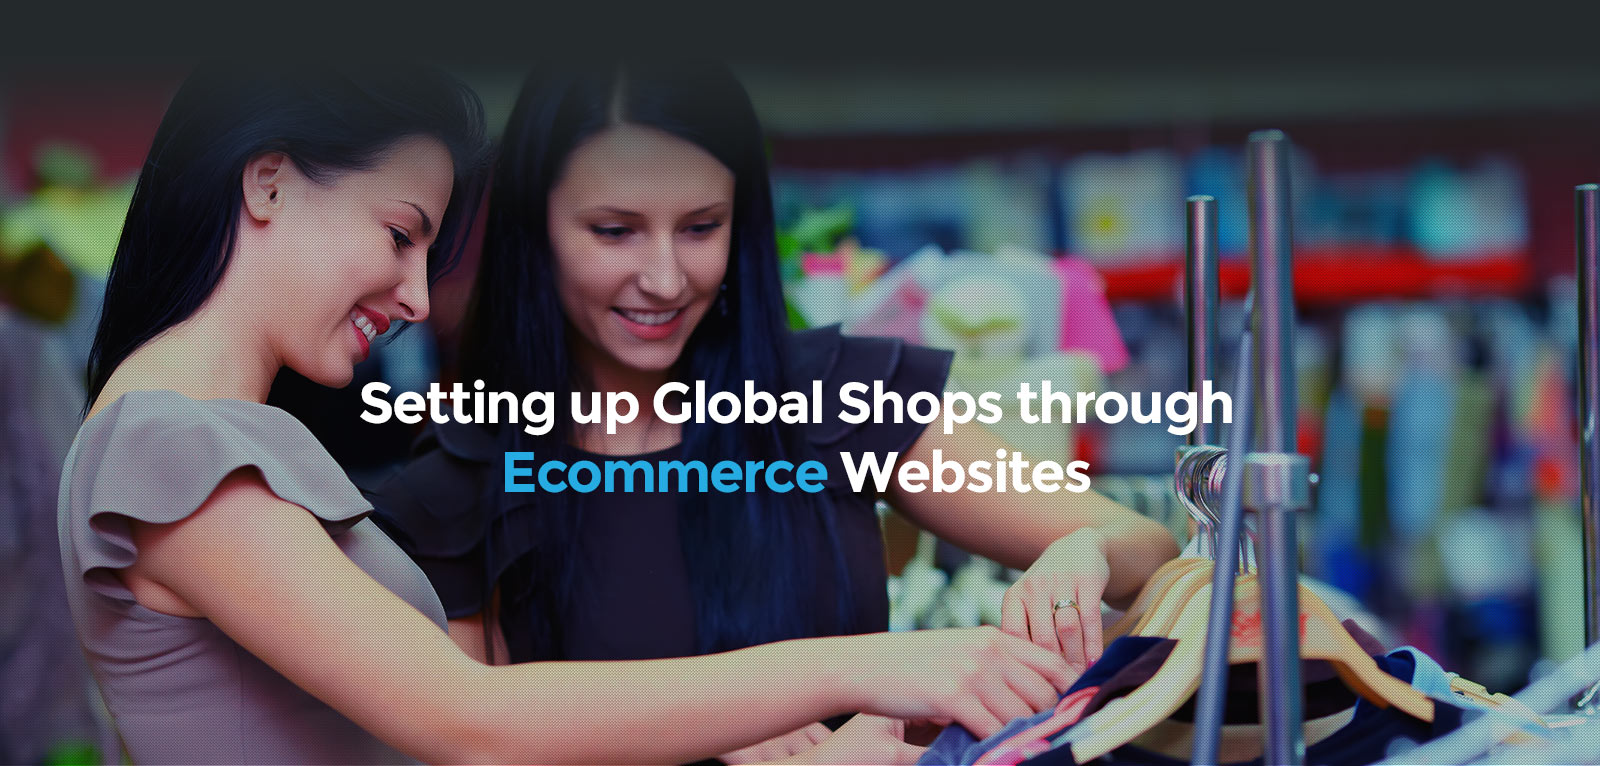 Setting up Global Shops through Ecommerce Websites